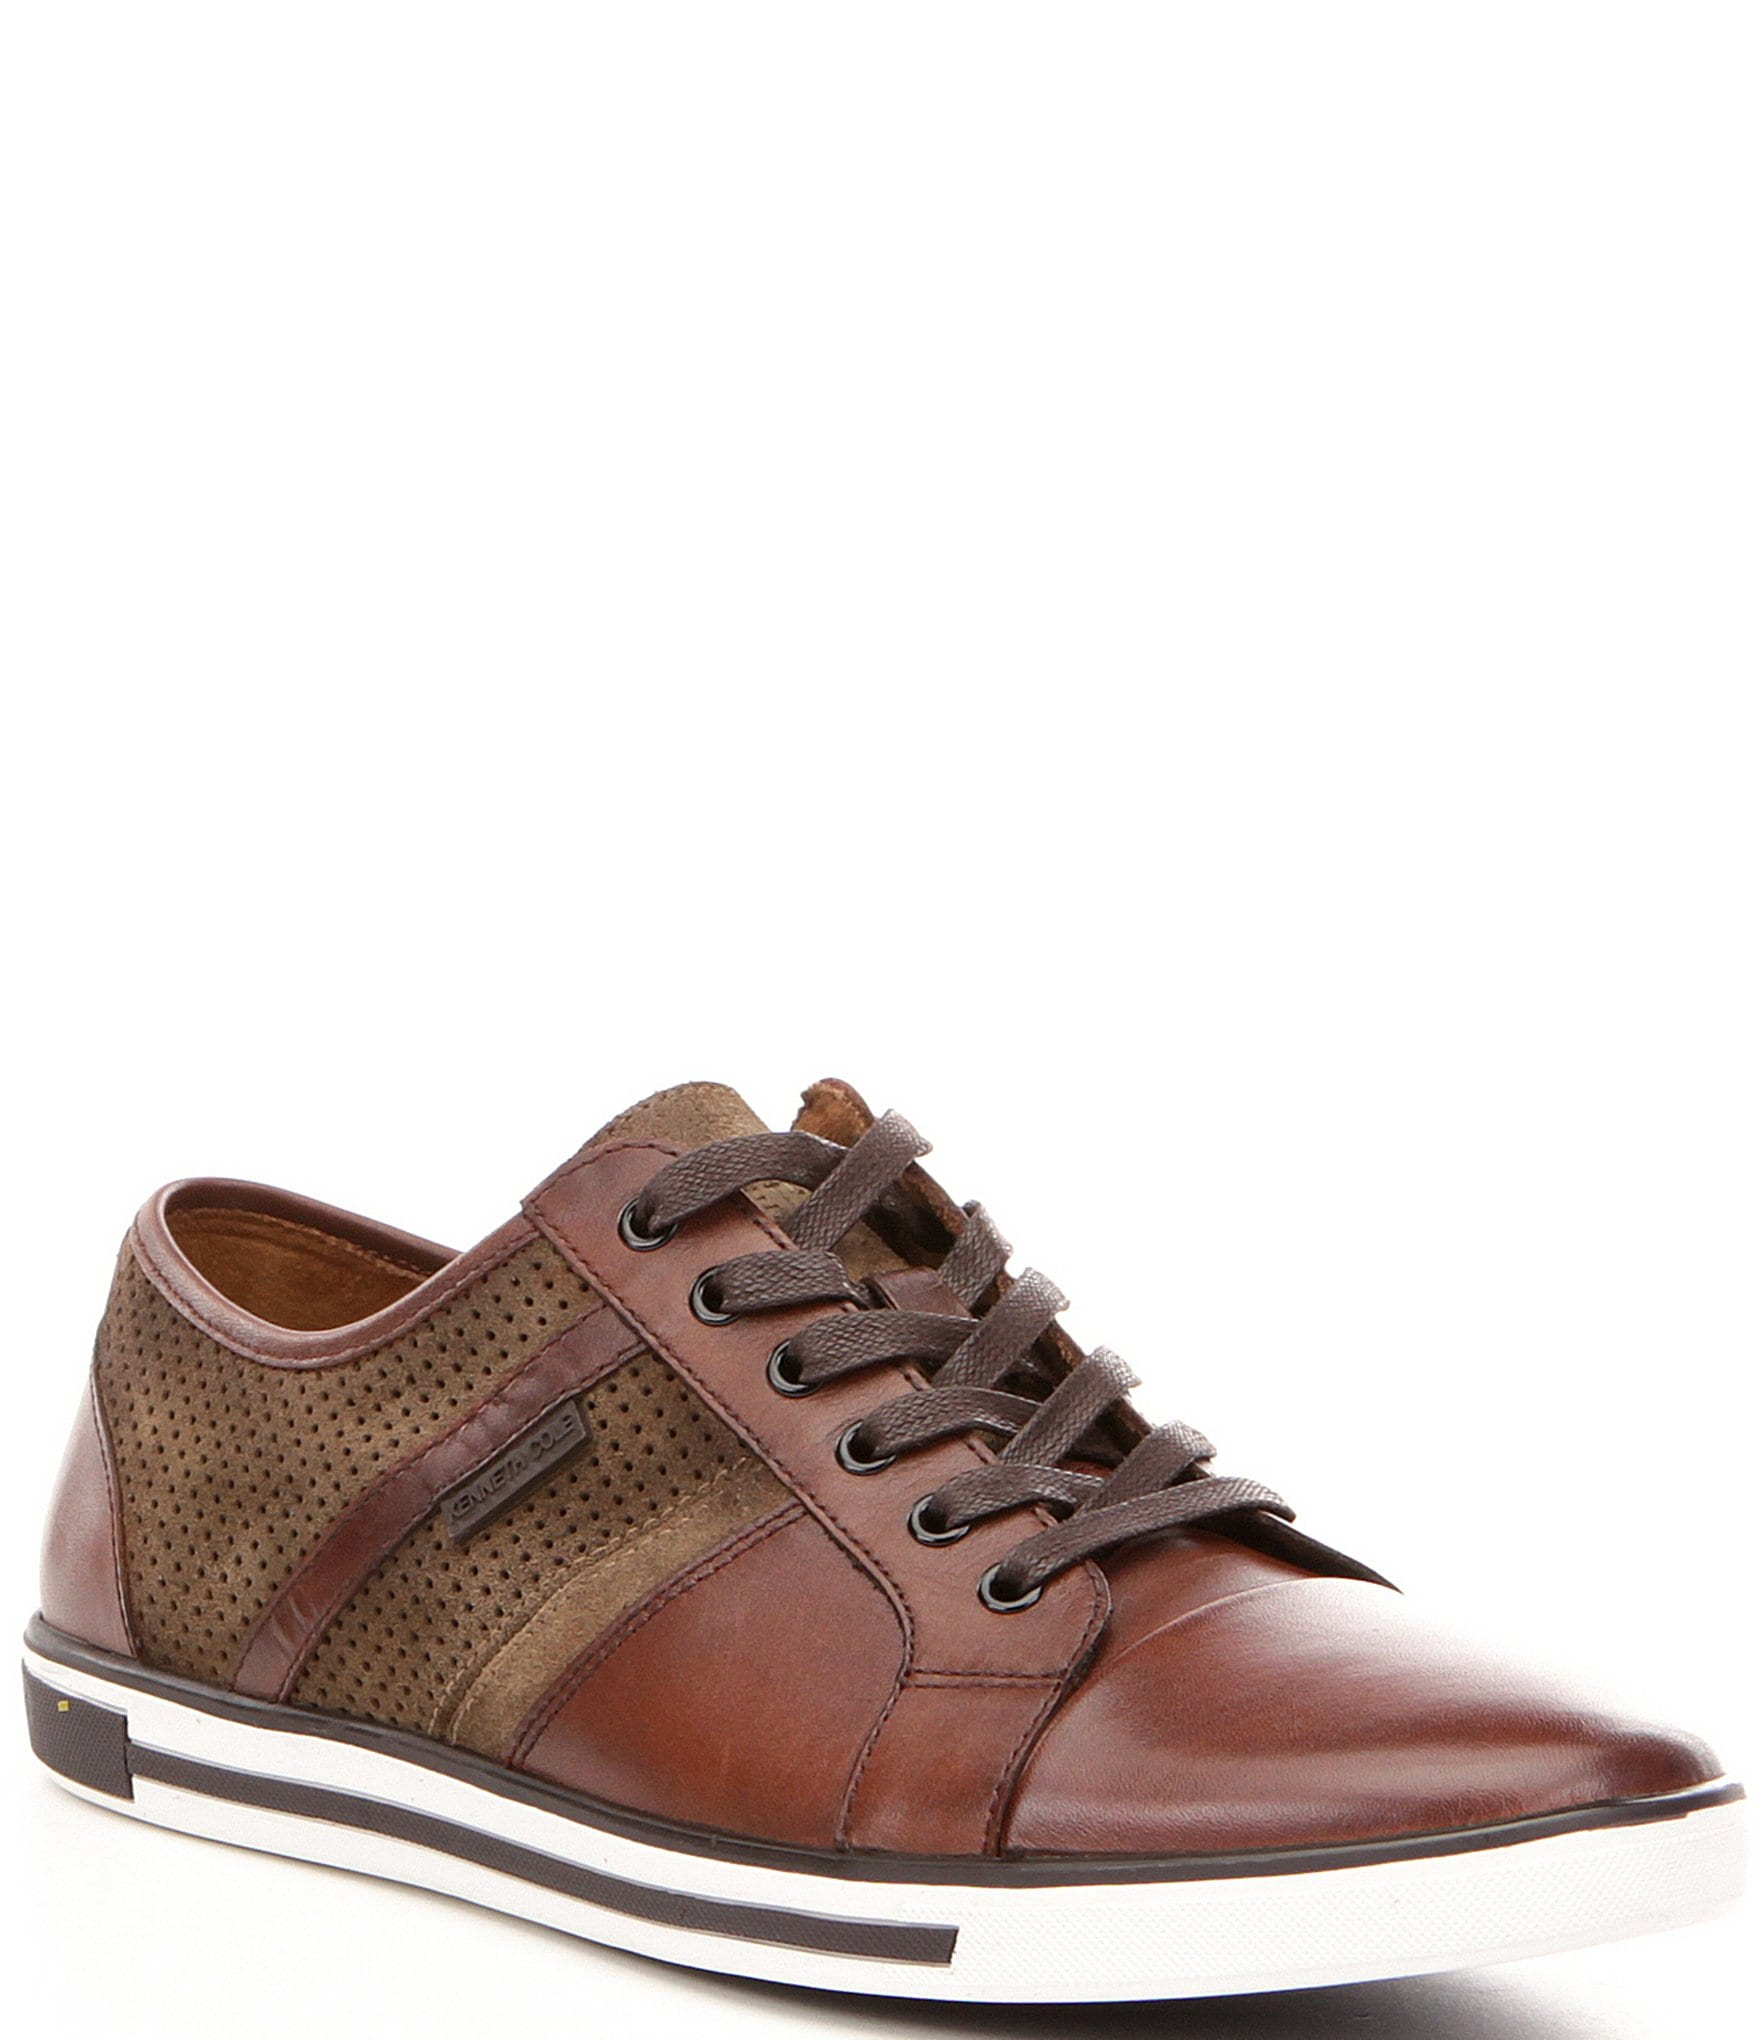 buy online lowest discount super specials Kenneth Cole New York Men's Initial Step Suede and Leather Cap Toe Sneakers